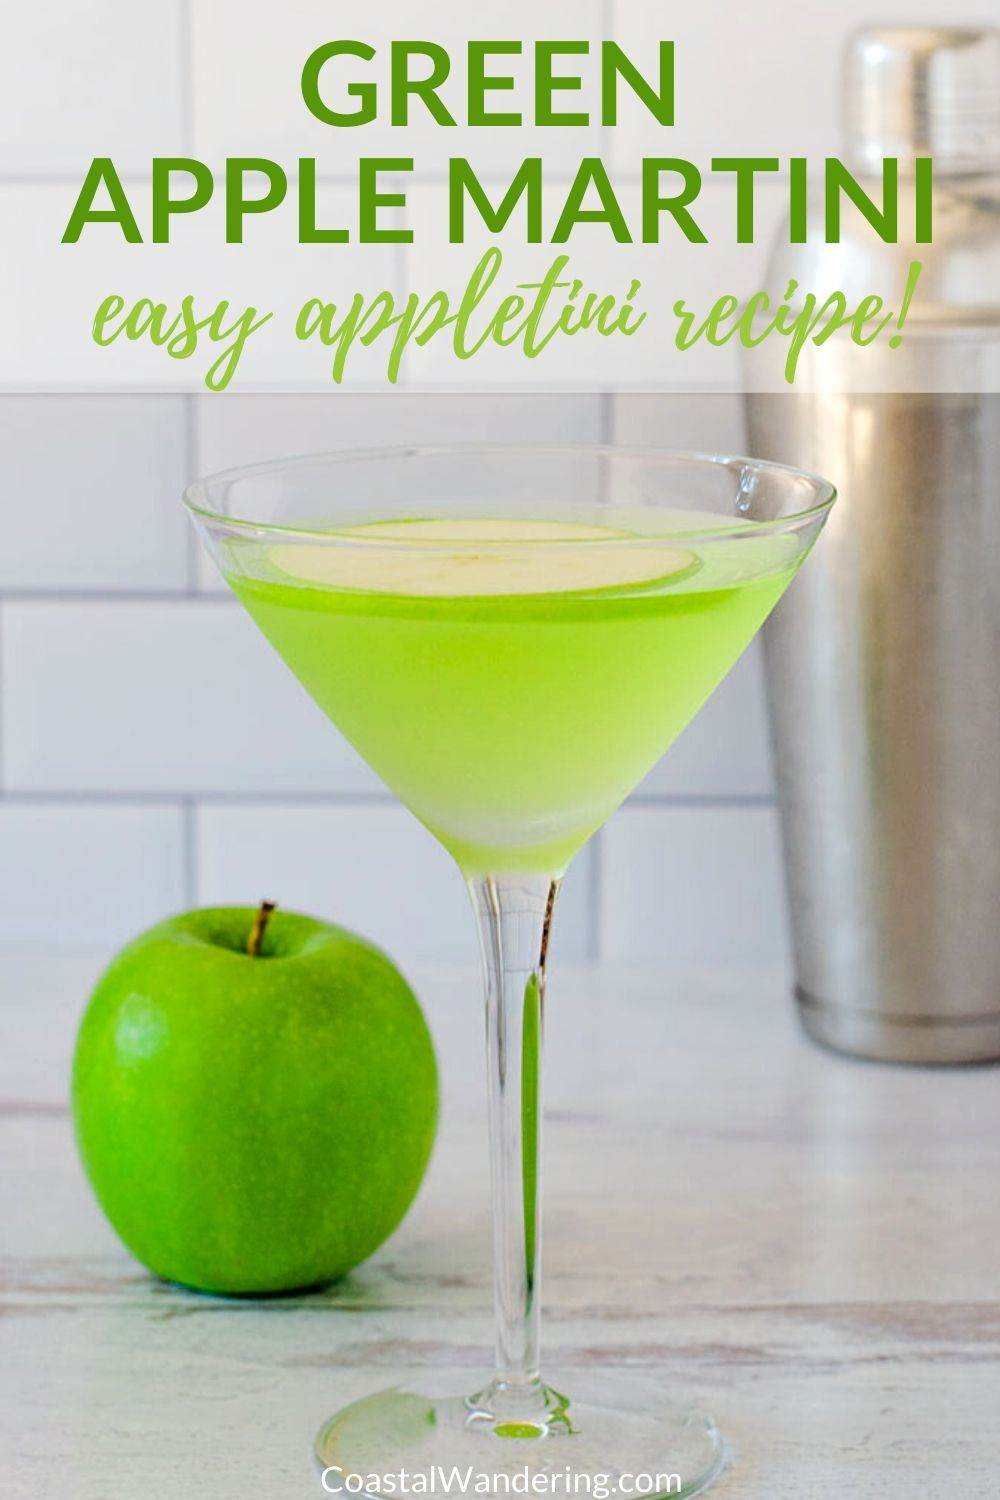 Green Apple Martini Recipe: How To Make a Sour Appletini Cocktail